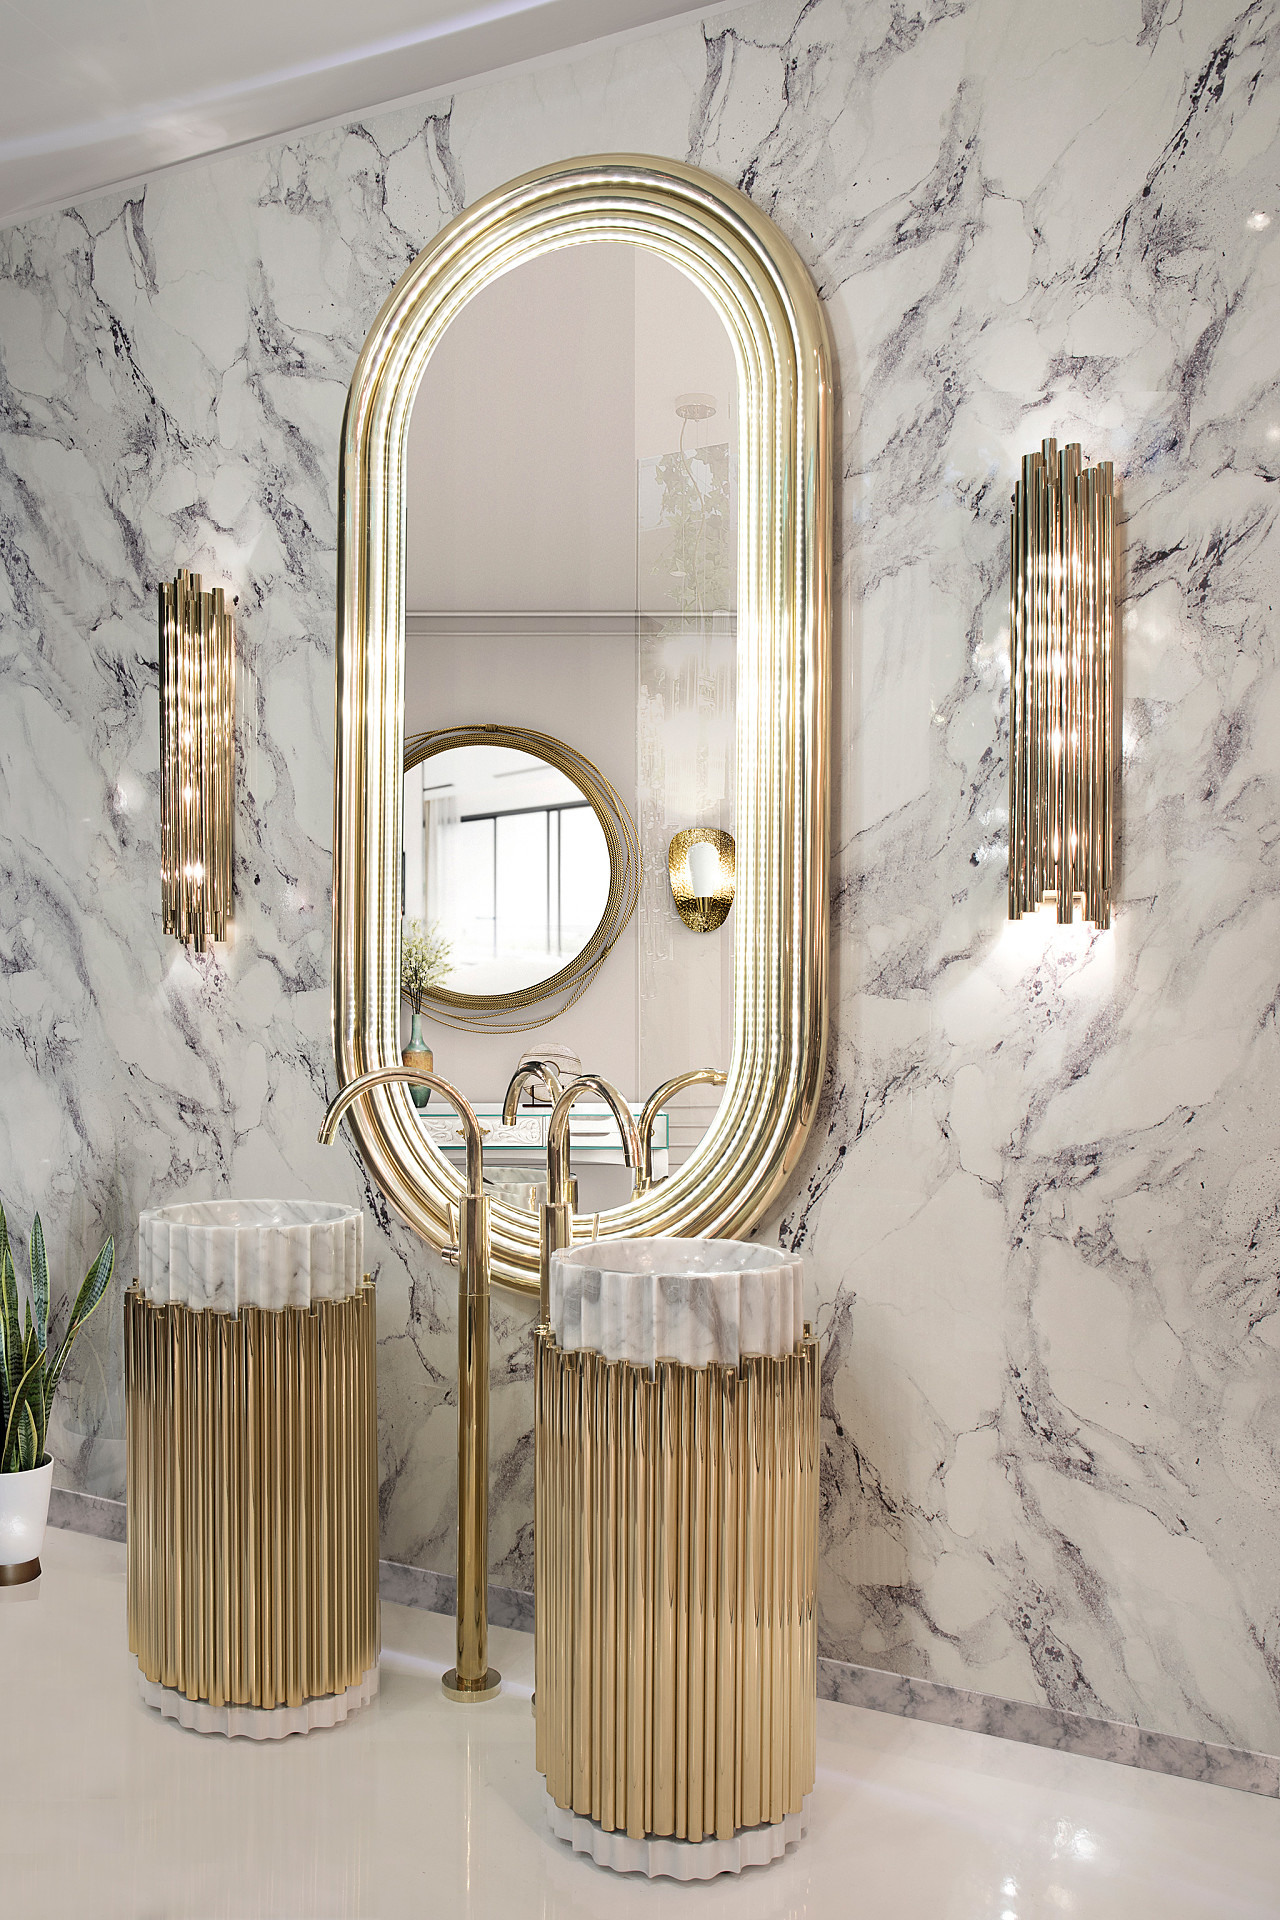 Metallic-Accents Best +60 Ideas to Enhance Your Bathroom's Luxuriousness